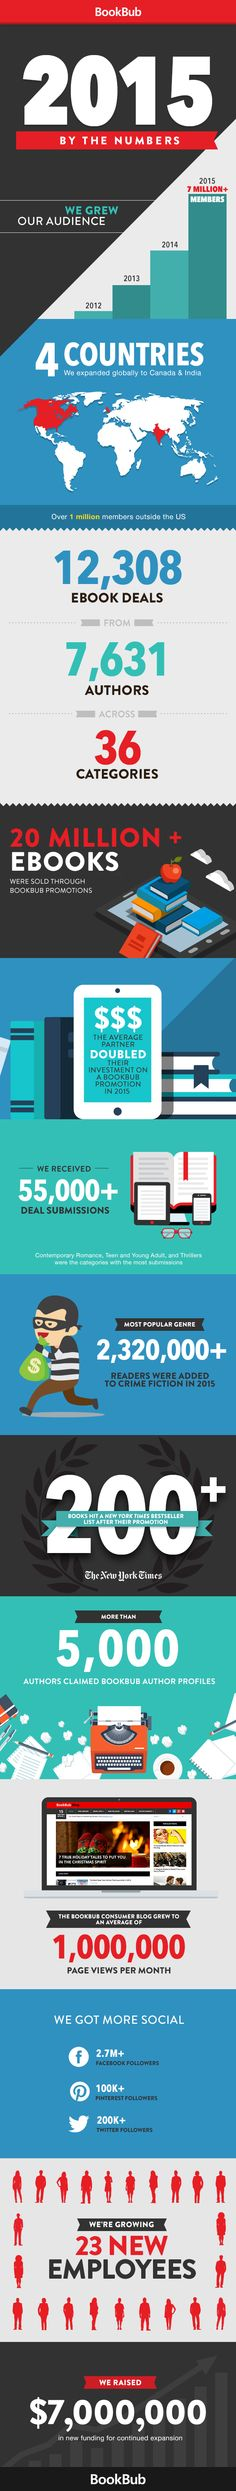 BookBub by the Numbers in 2015 [Infographic]